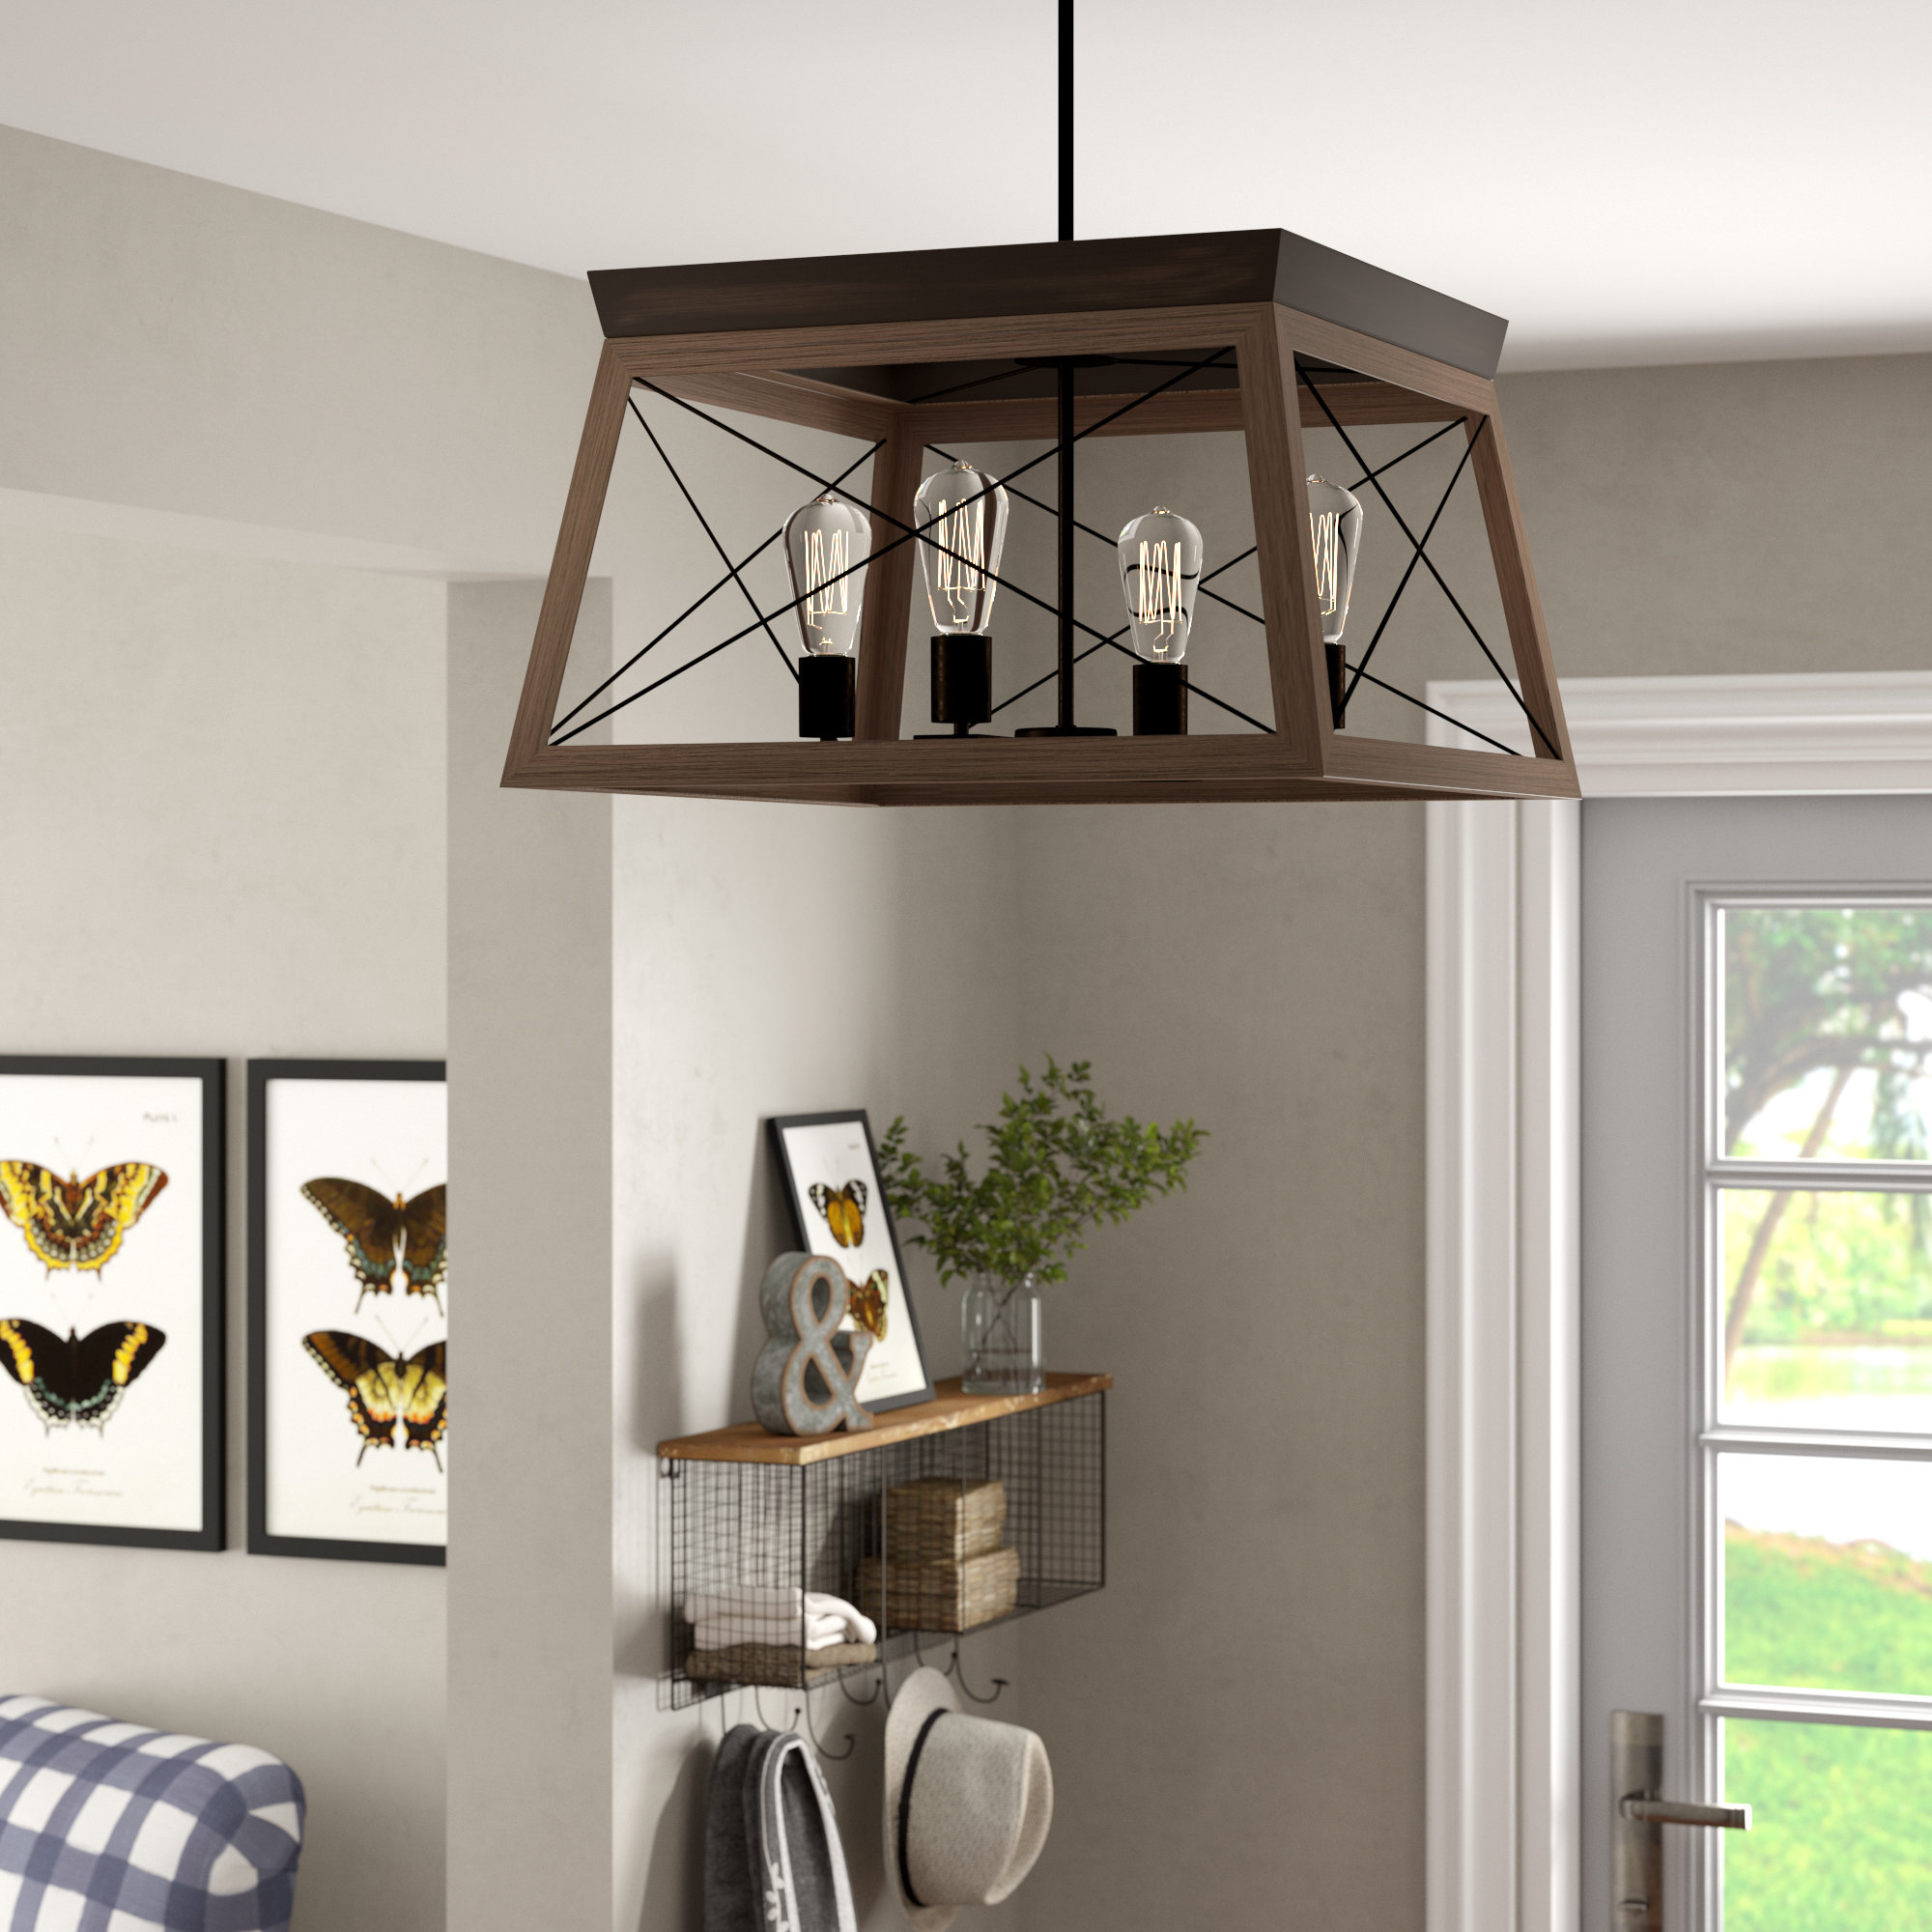 Square & Rectangular Chandeliers Sale – Up To 65% Off Until For Hewitt 4 Light Square Chandeliers (View 3 of 30)